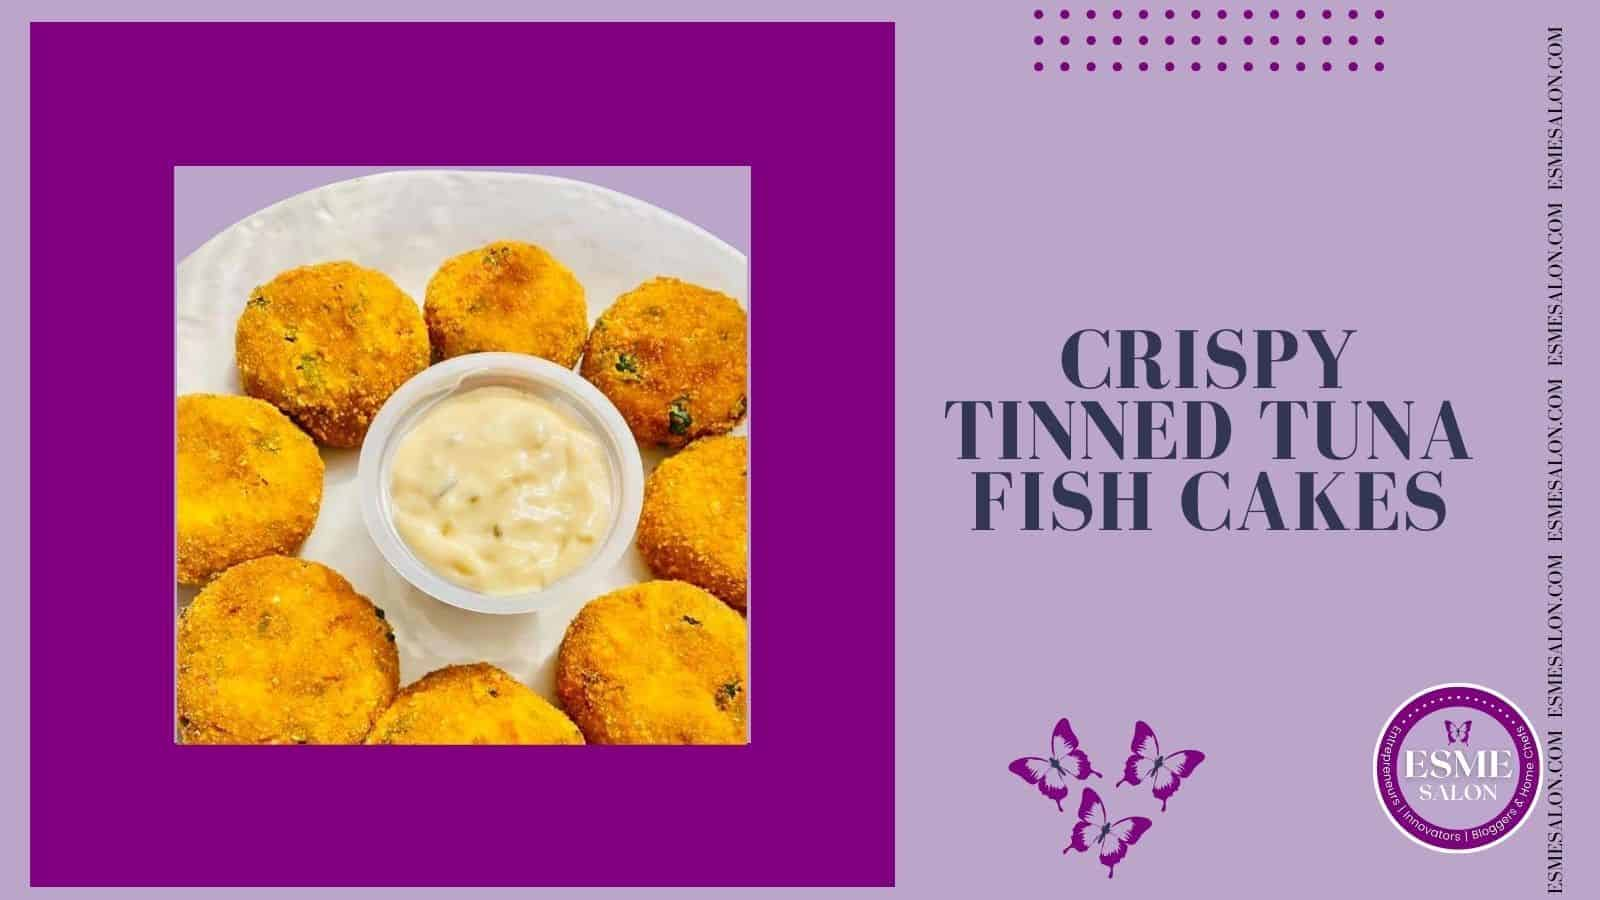 Plate with Crispy Tinned Tuna Fish Cakes with a dip in the middle